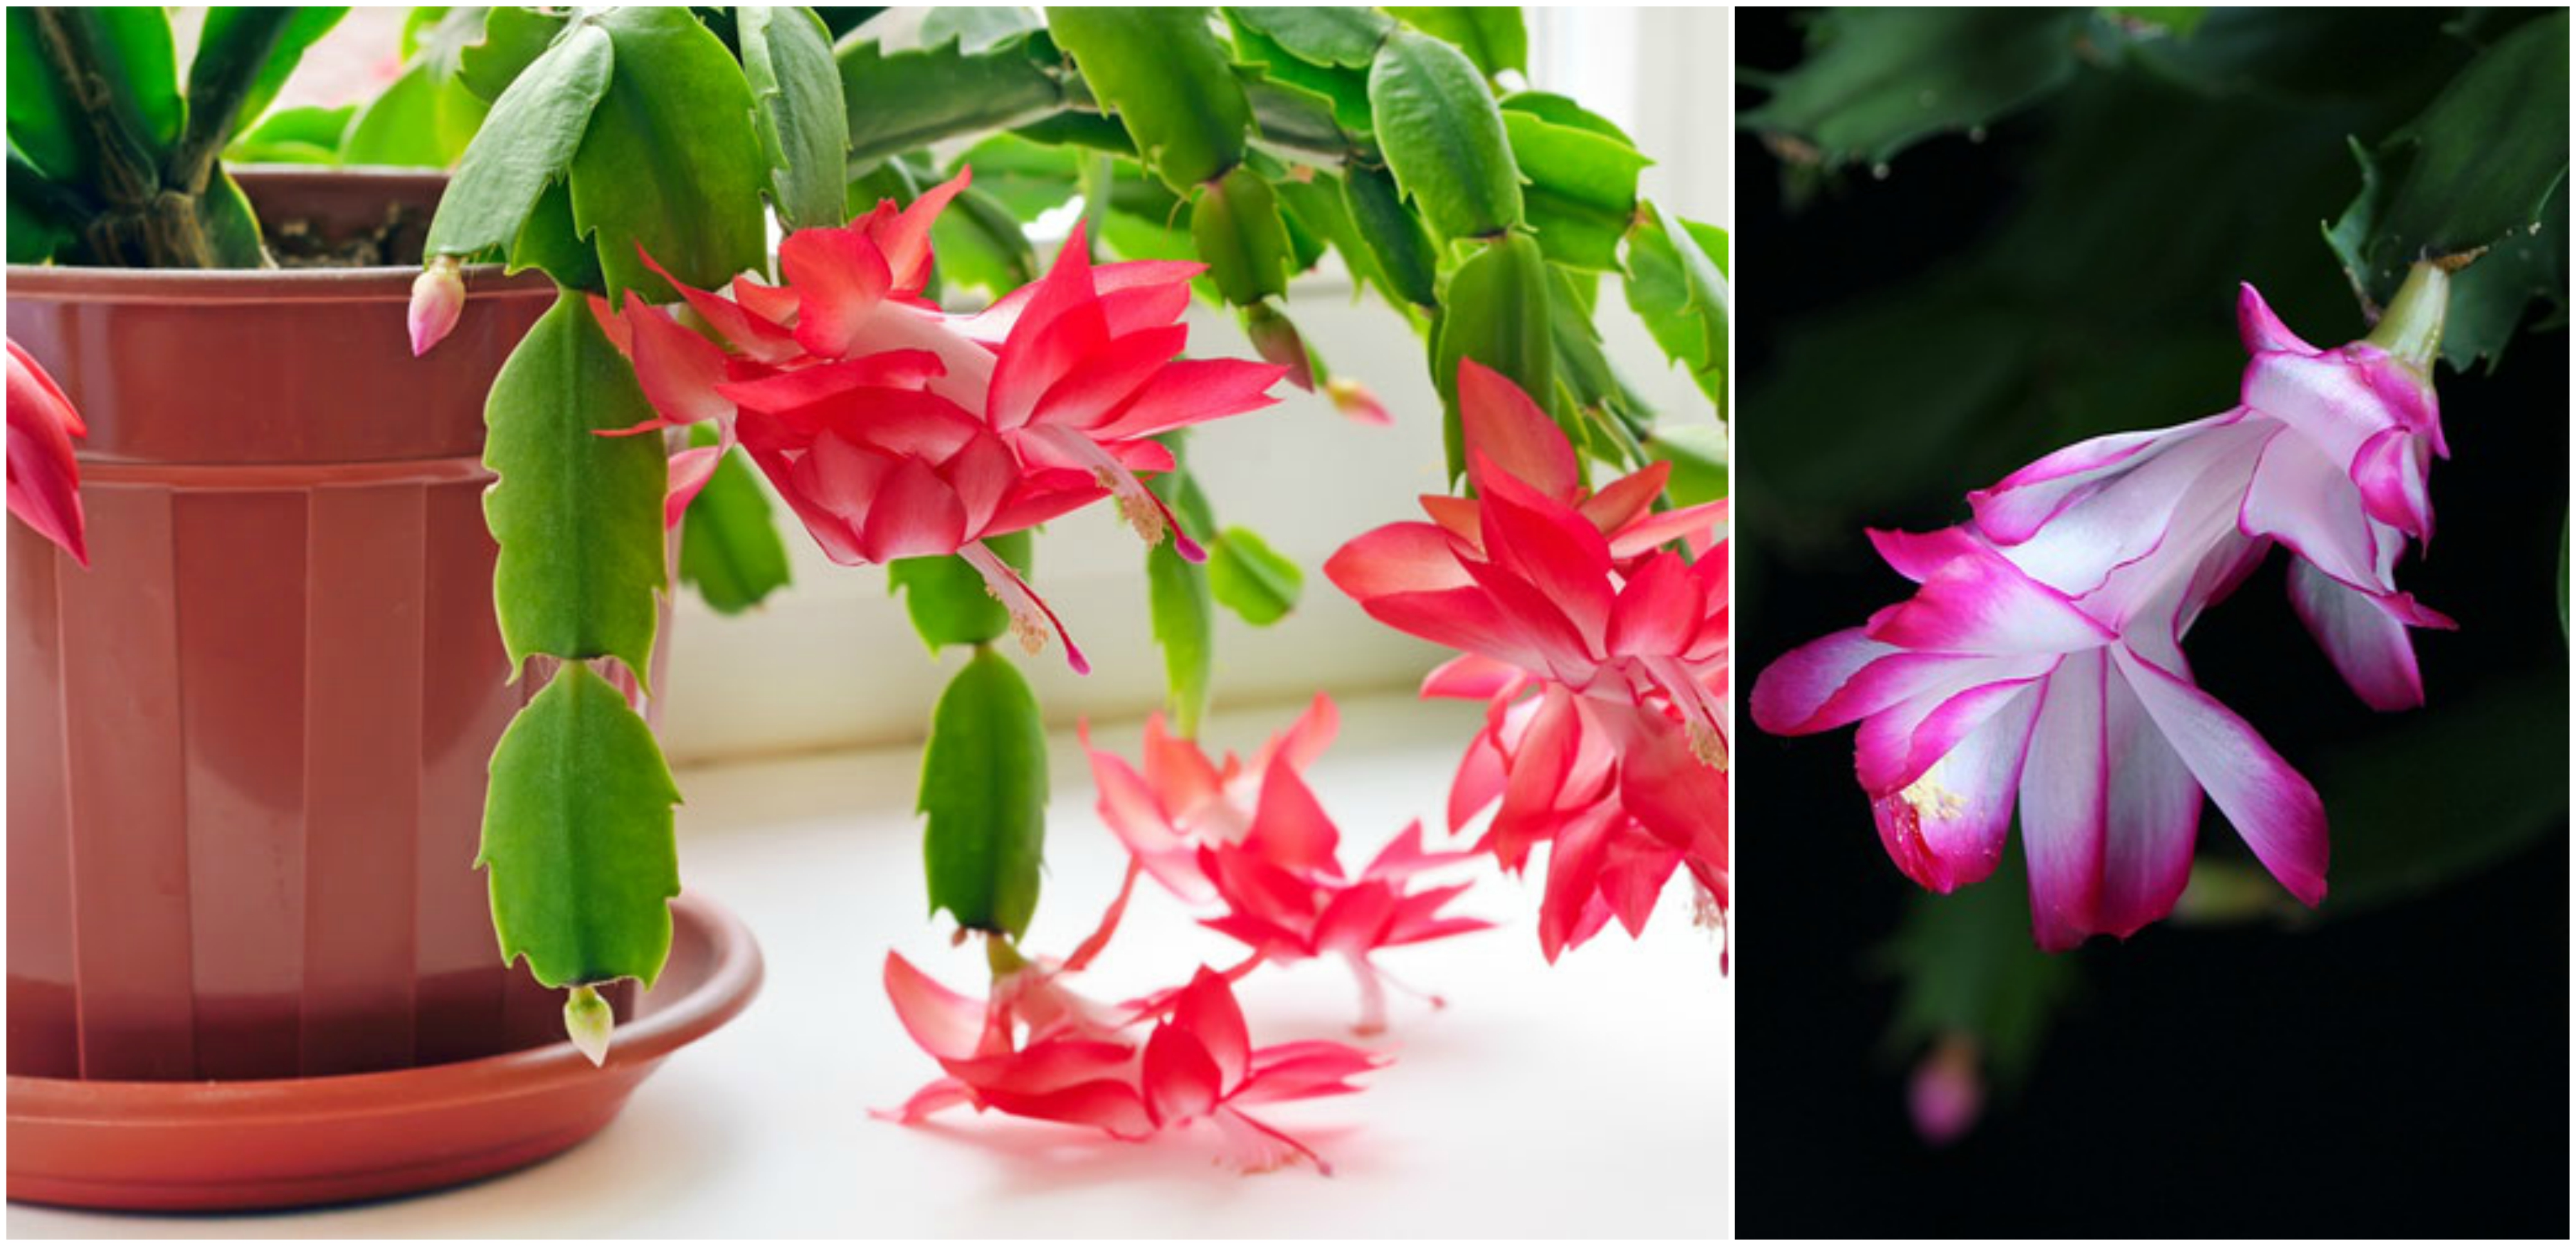 Christmas Cactus Blooming.How To Grow And Care For Christmas Cactus The Plant Guide